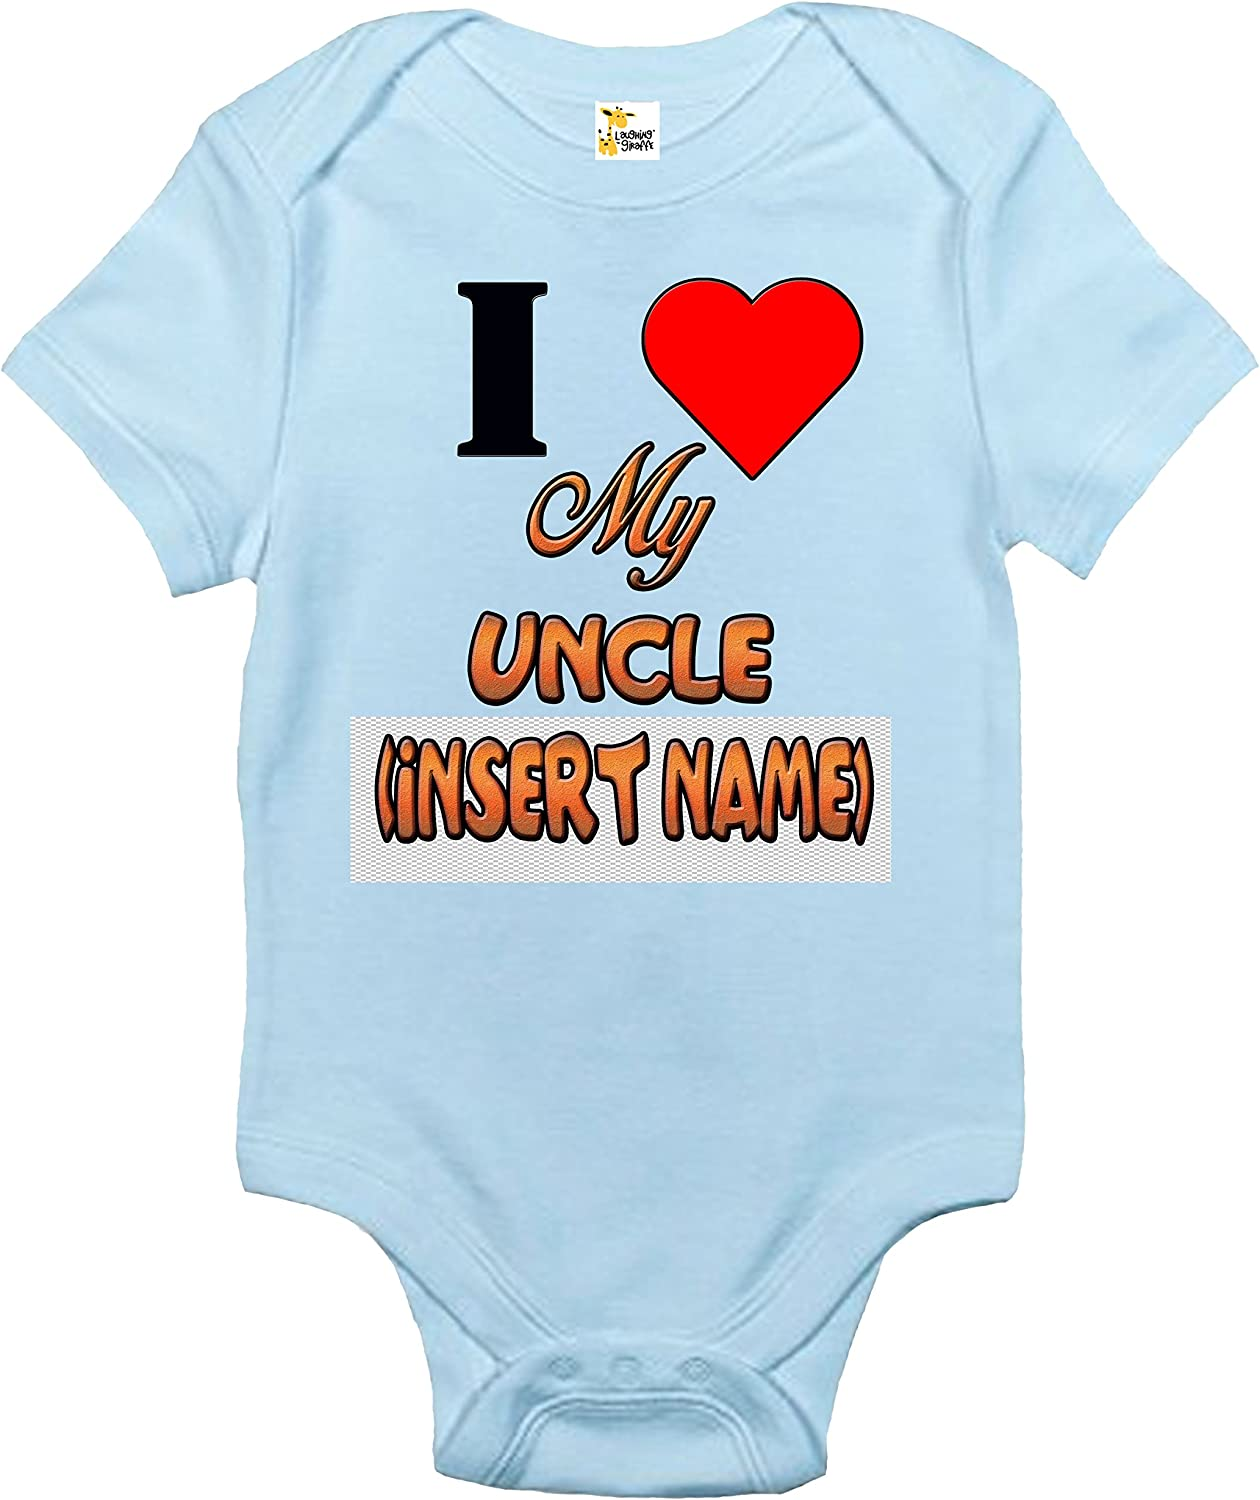 Custom Personalized Baby Max 53% OFF Bodysuit - I My Sale SALE% OFF One-piece Uncle Ba Love